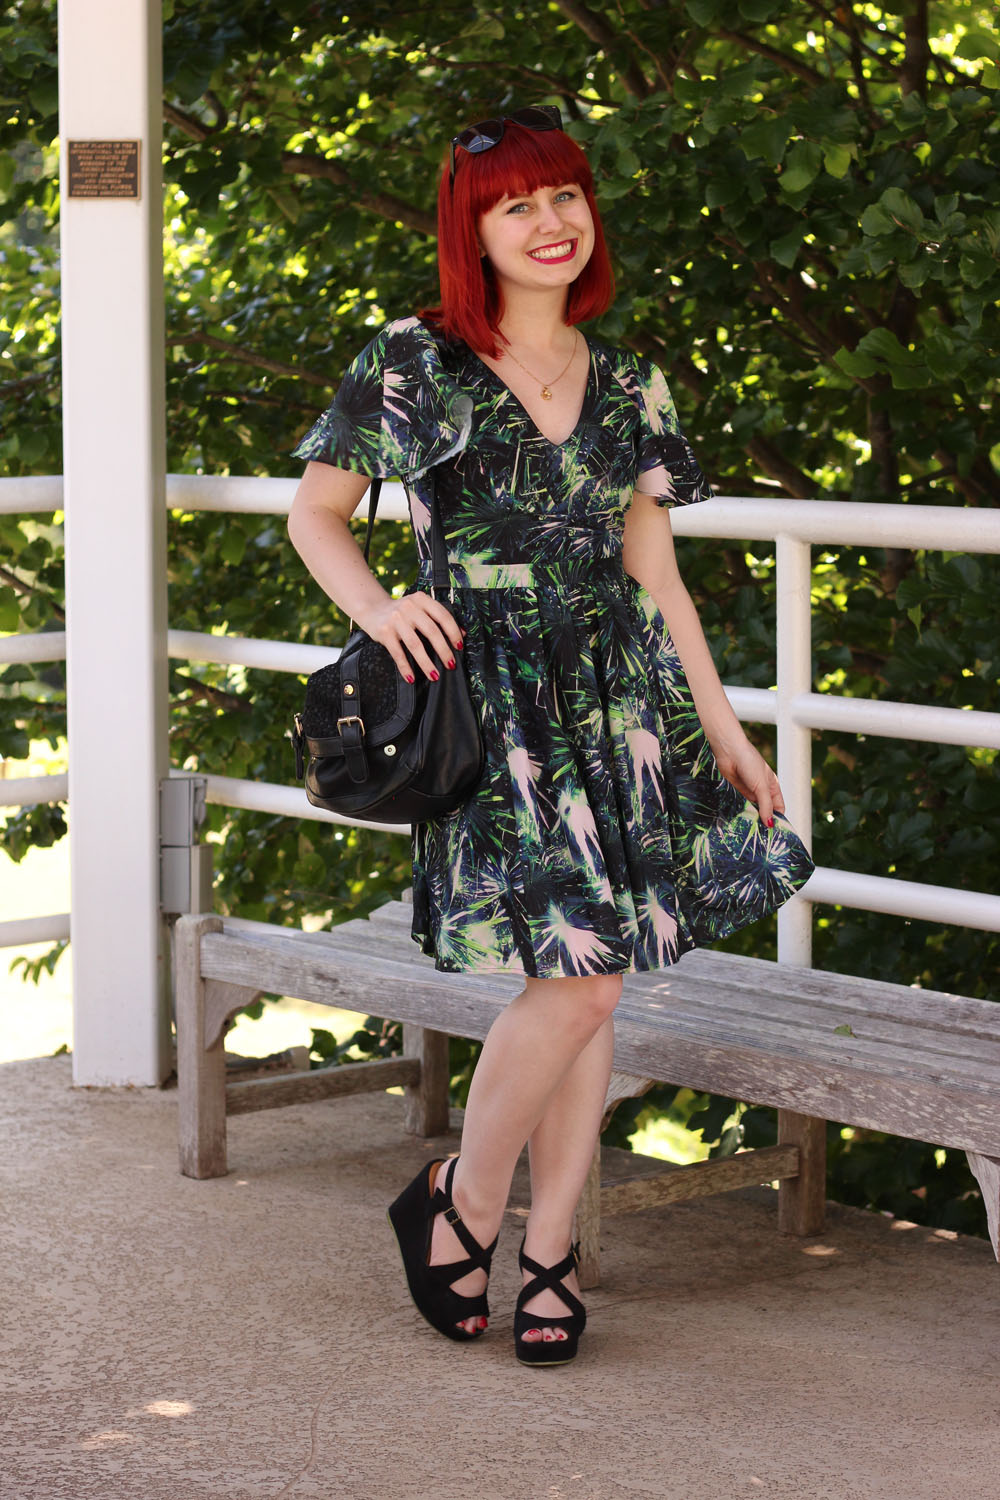 Wolf and Whistle Palm Print Chiffon Dress Black Wedges Bright Red Hair